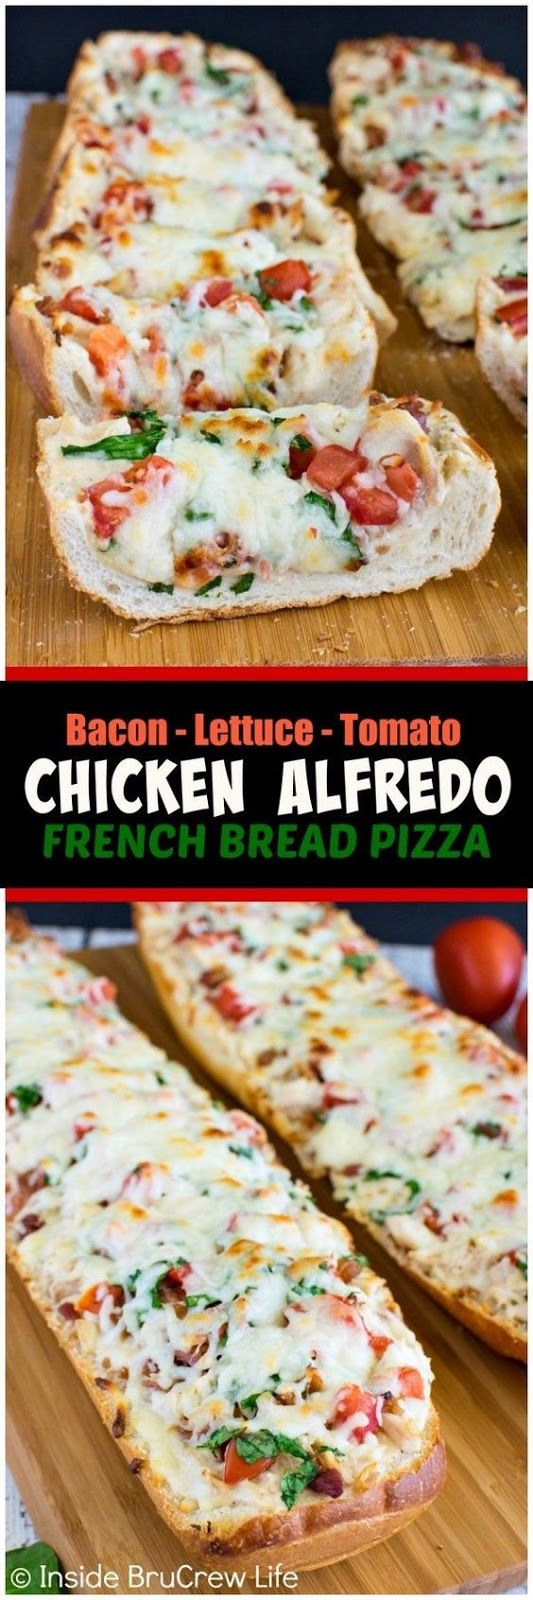 Ingredients   1 loaf French bread   1 jar Alfredo sauce   1/4 cup grated Parmesan cheese   1 1/2 cup chopped cooked chicken   3/4 cup c...